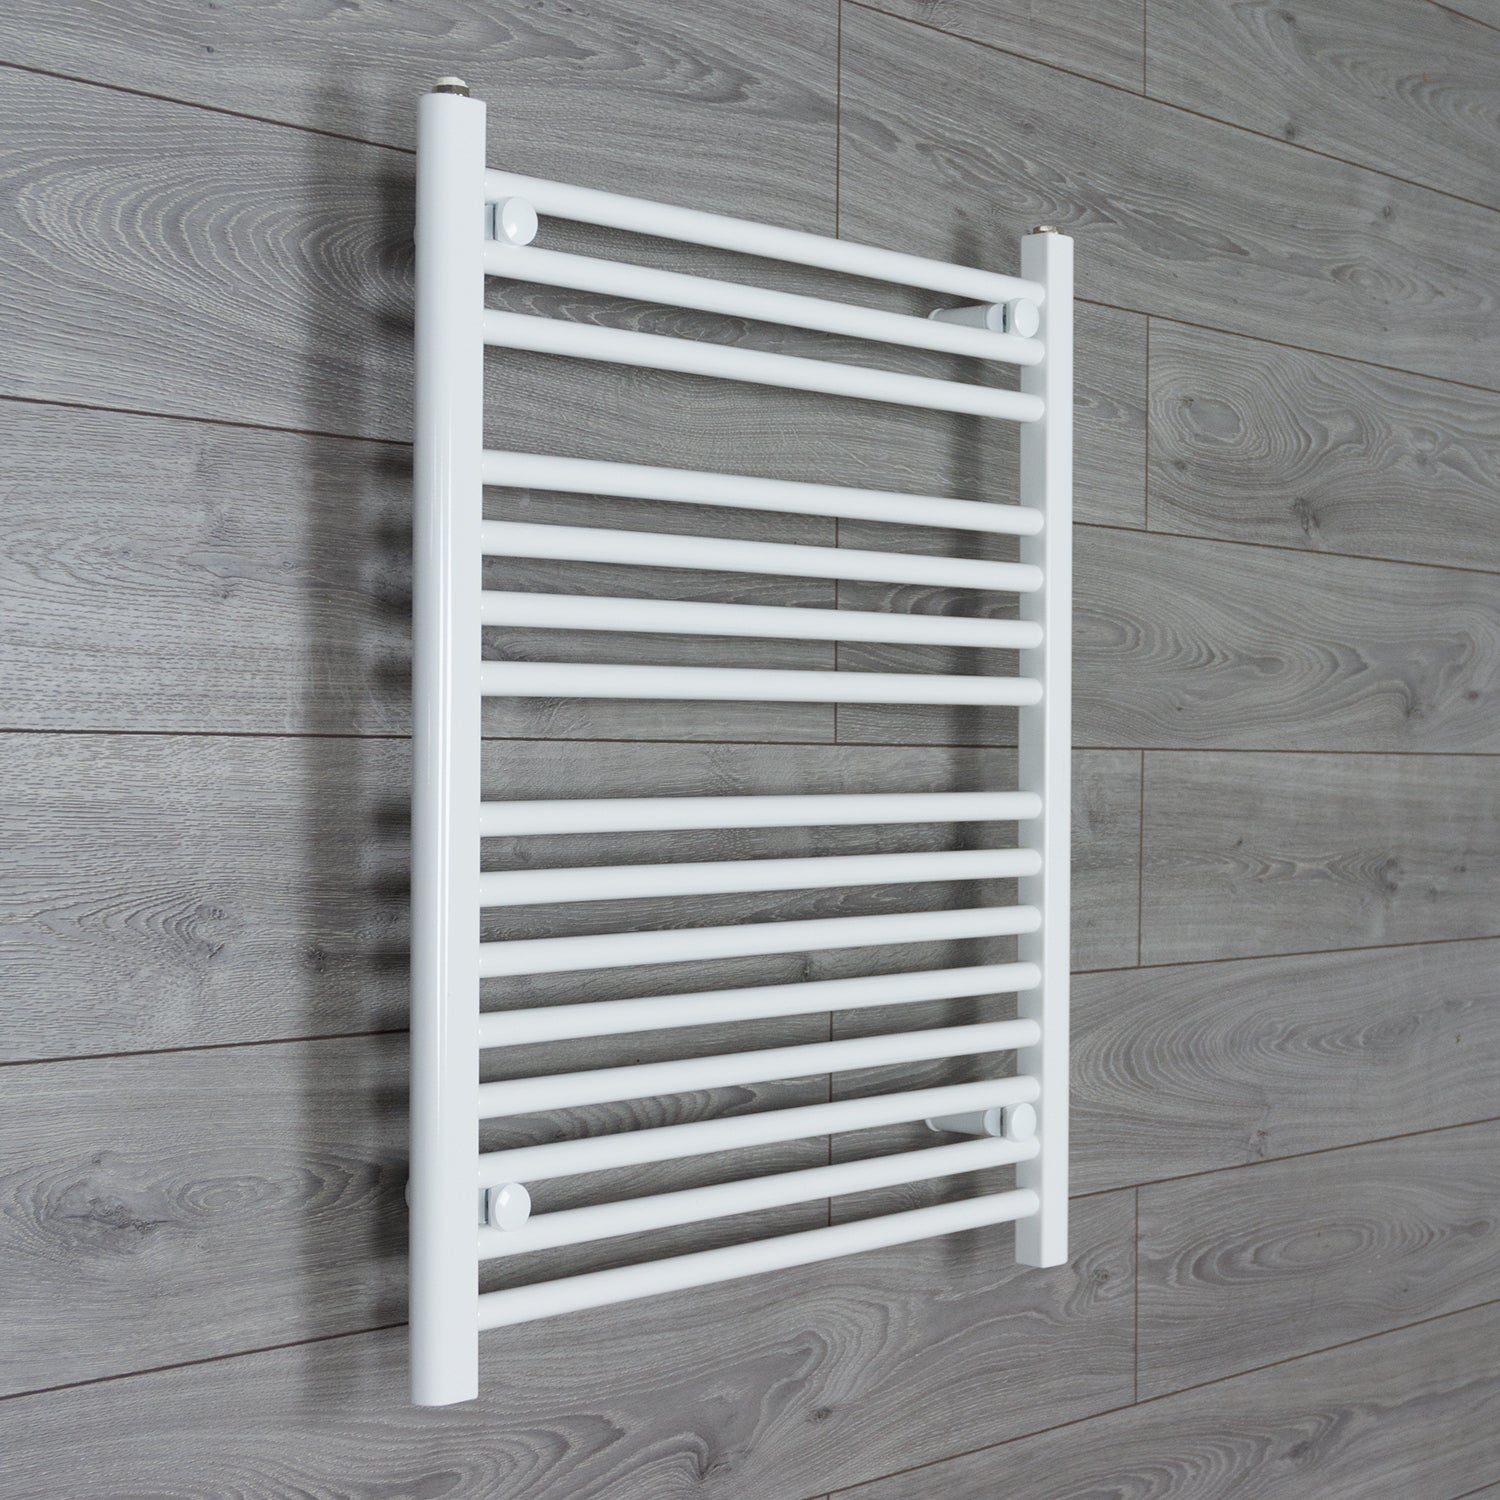 700mm x 800mm High White Towel Rail Radiator